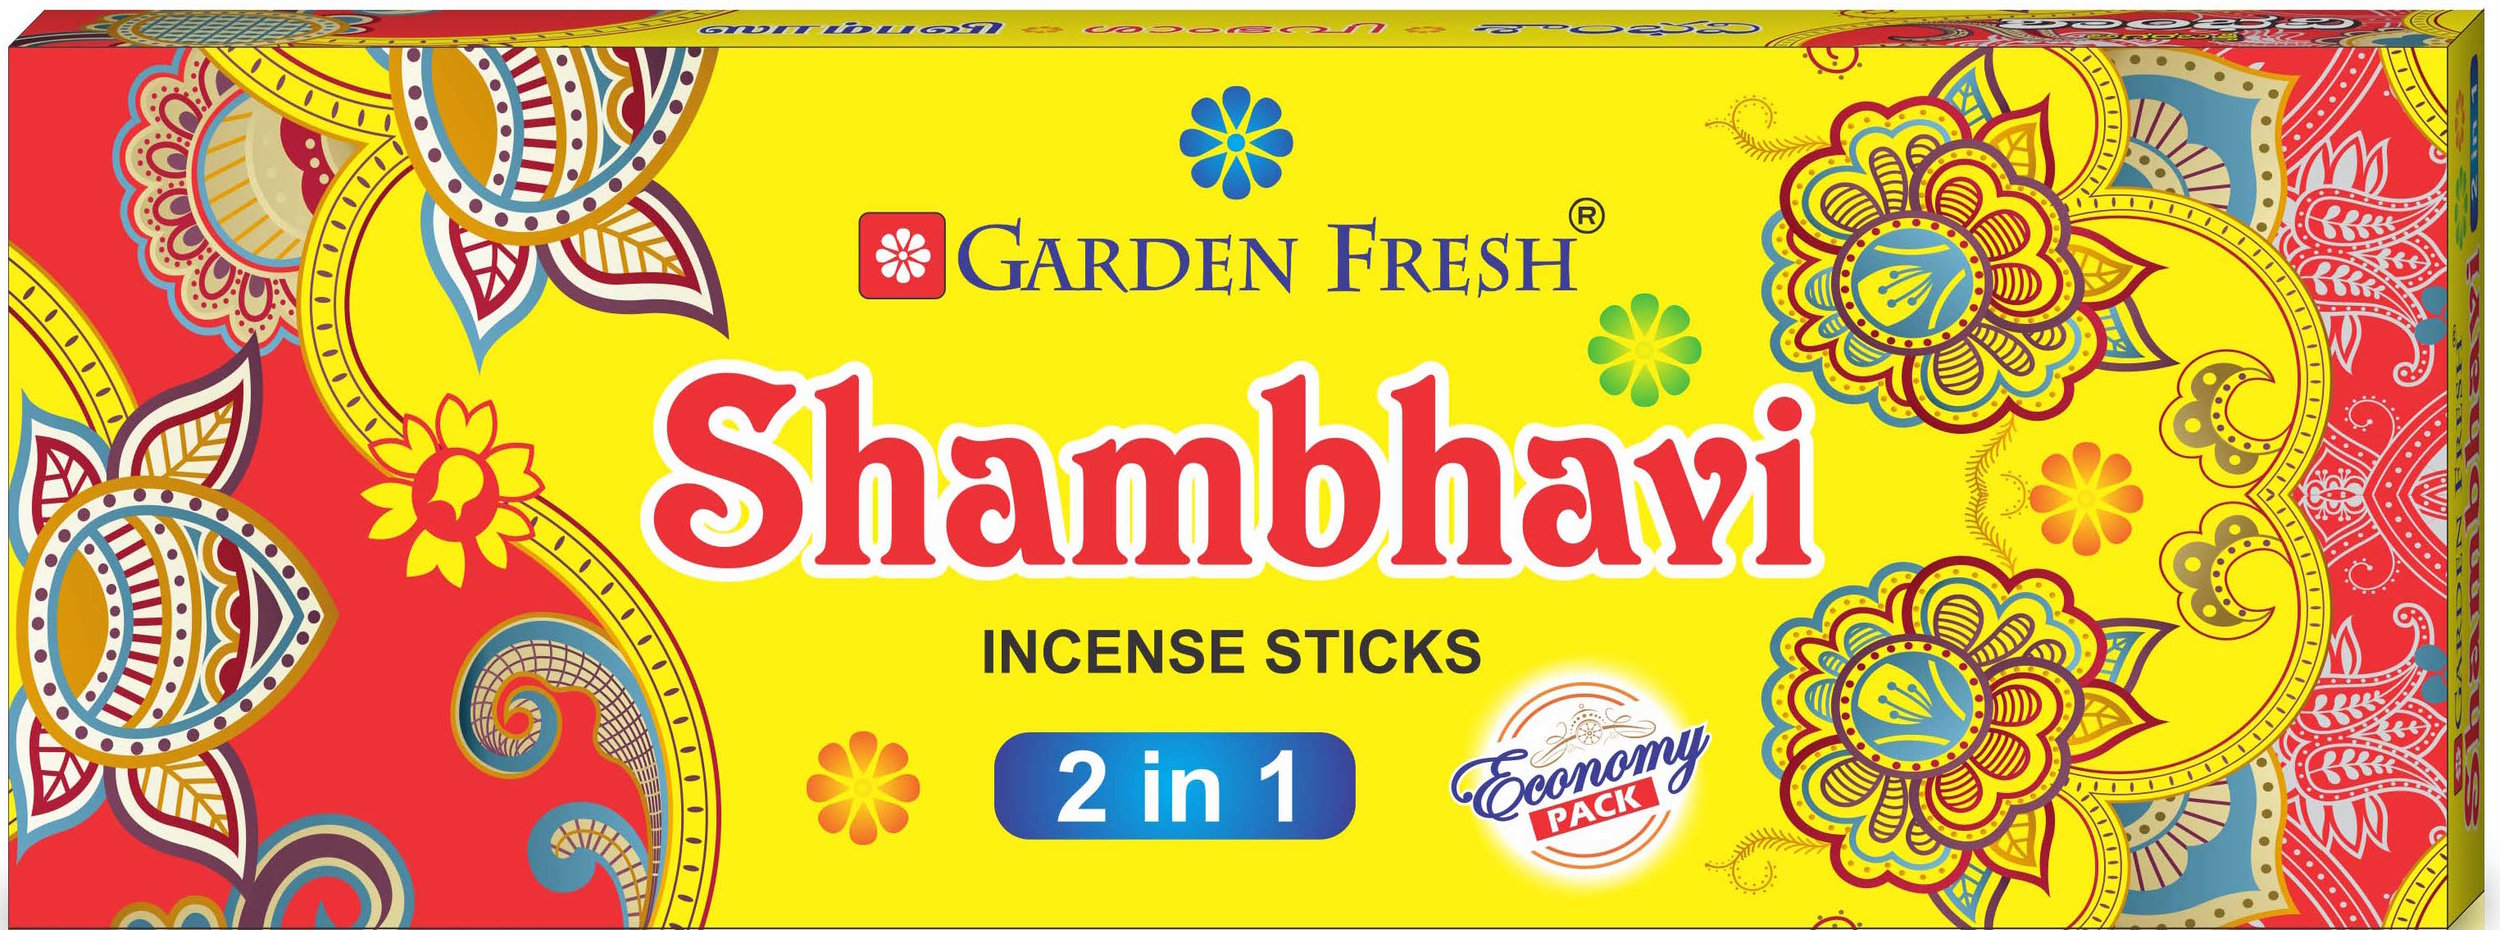 Shambhavi - Experience this fancy, pleasant and sweet aroma that comes in economy packaging.Net contents: 100 grams